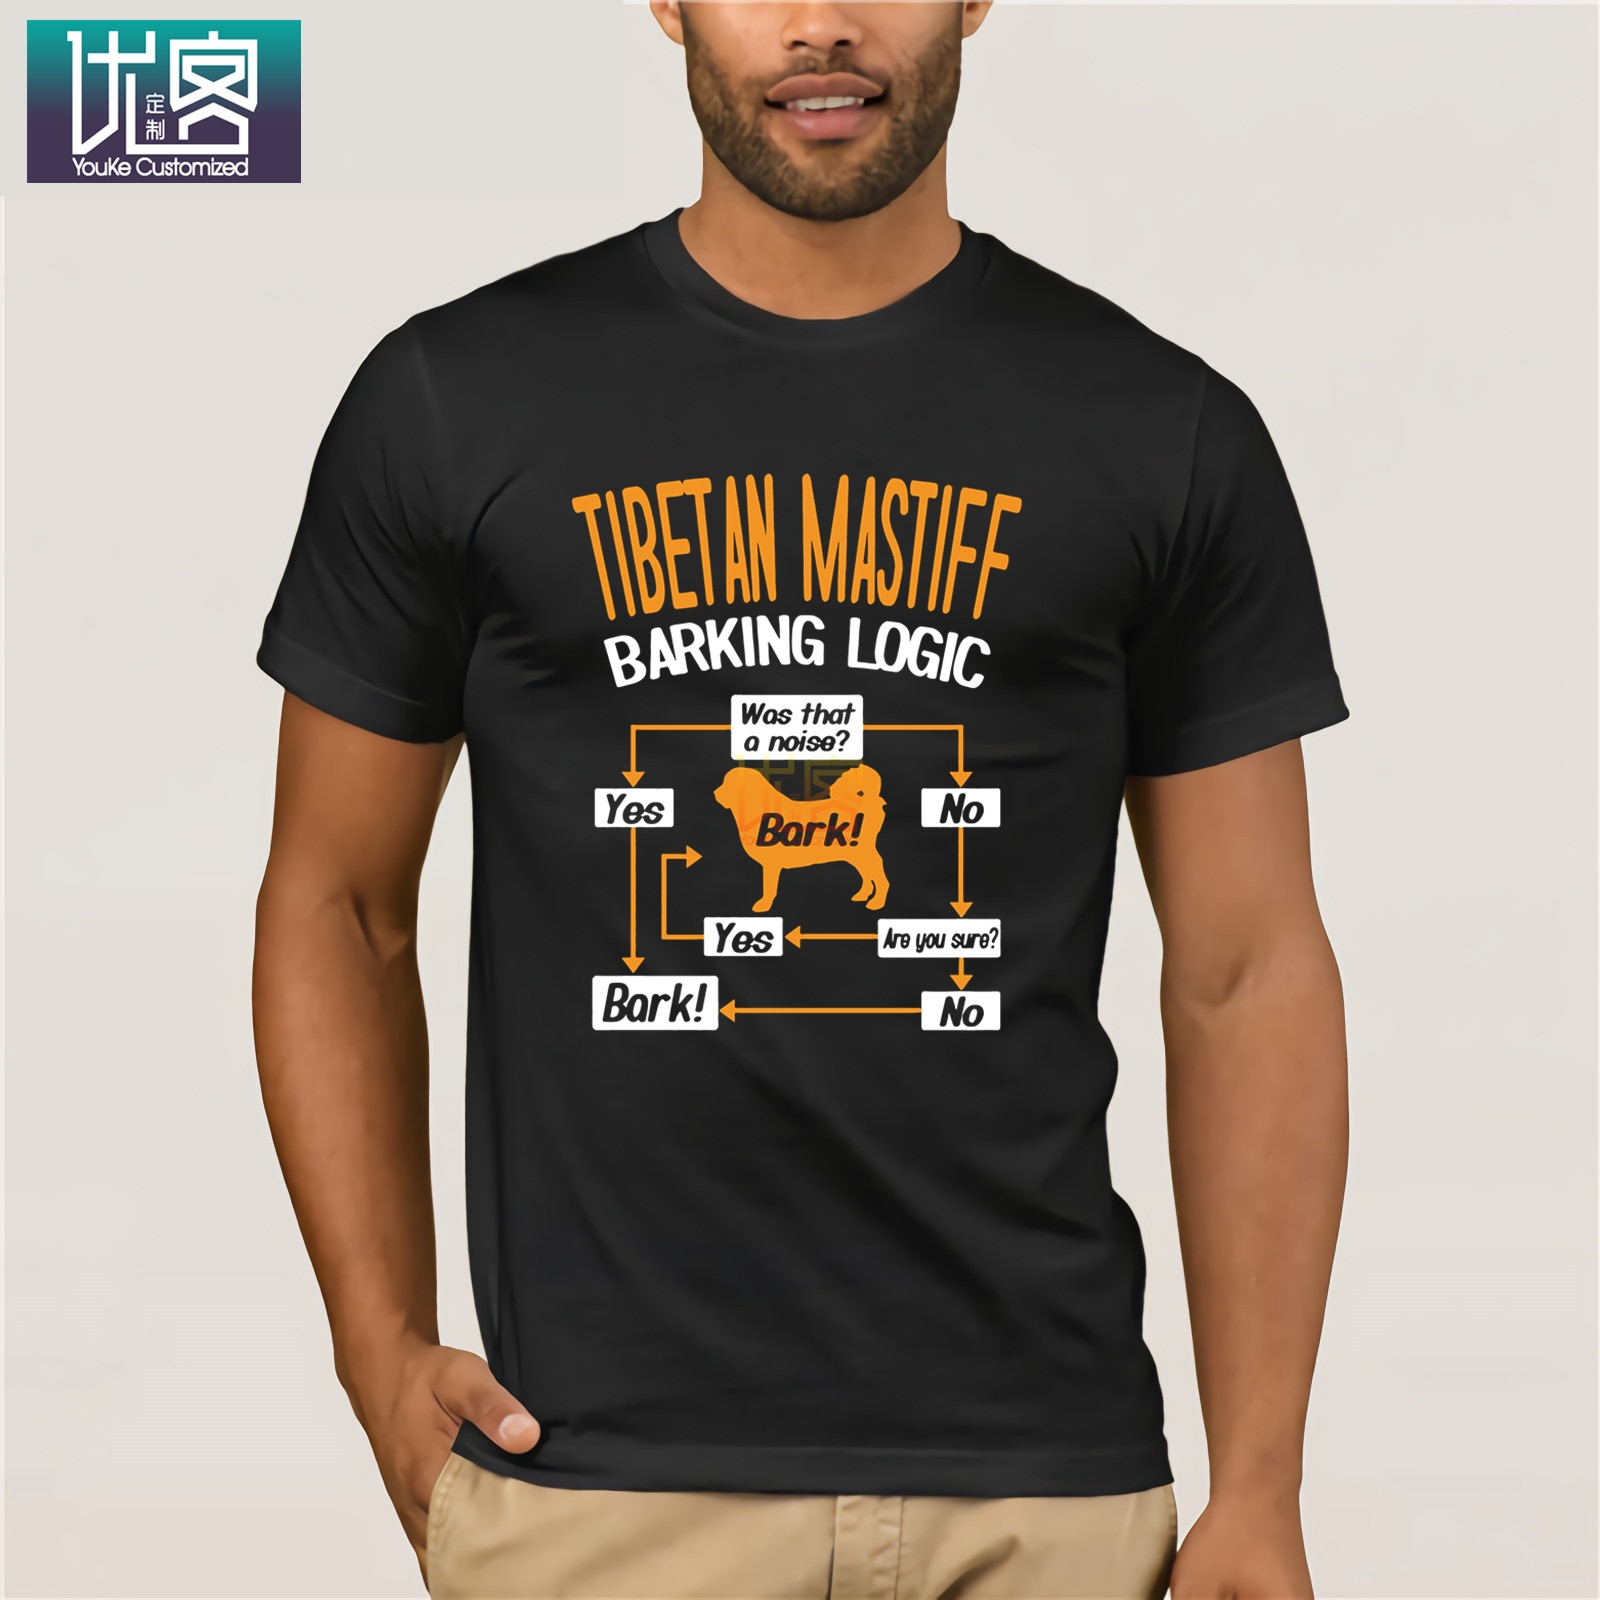 Tibetan Mastiff Barking Logic 2019 Summer Men's Short Sleeve T-Shirt O Neck Cotton Tees Tops Funny Tees Cotton Tops T Shirt